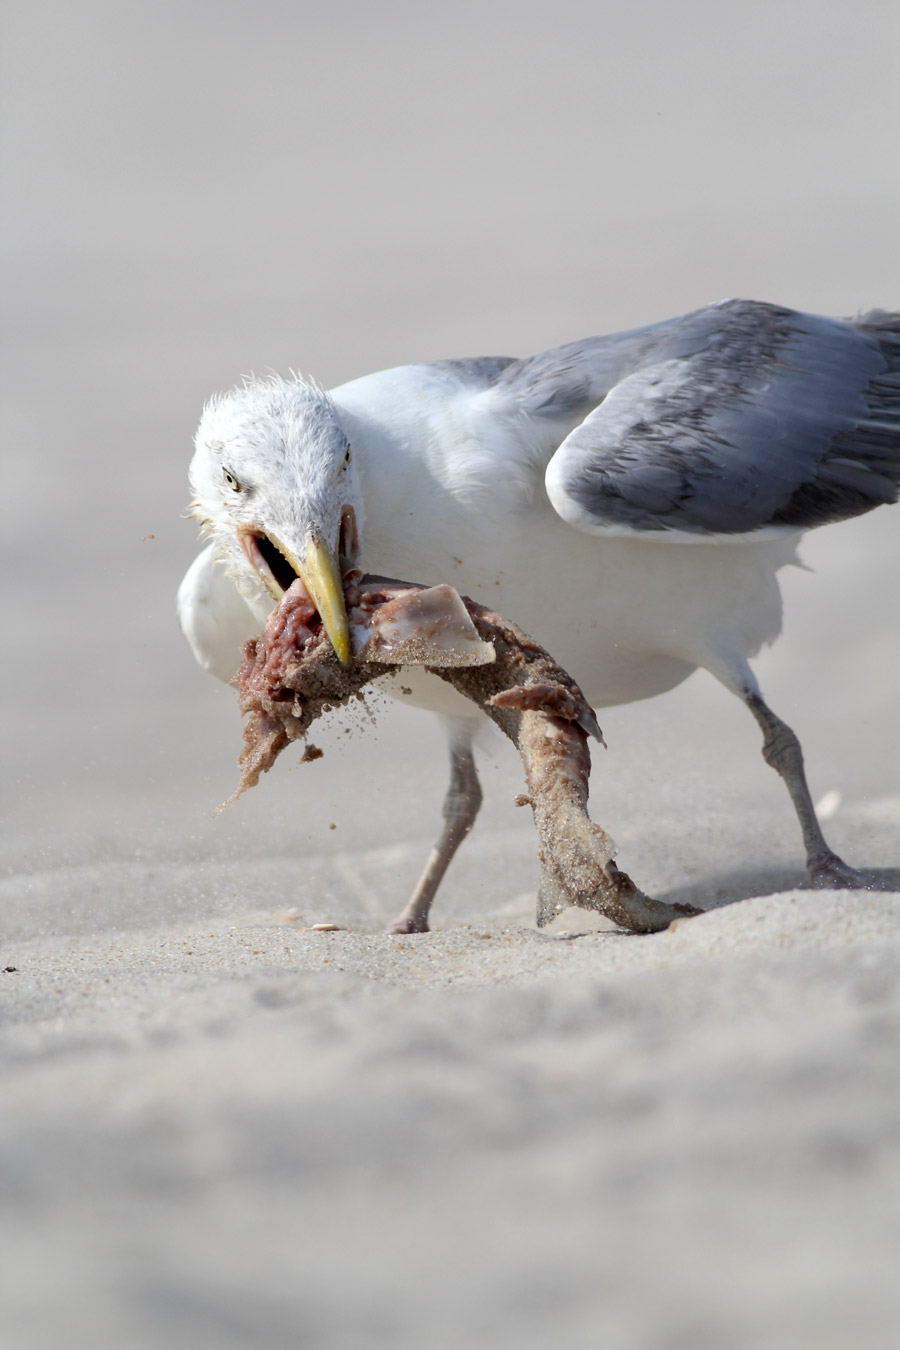 But as other gulls started to circle, Big Poppa had to take the lunch BACK and re-consume it